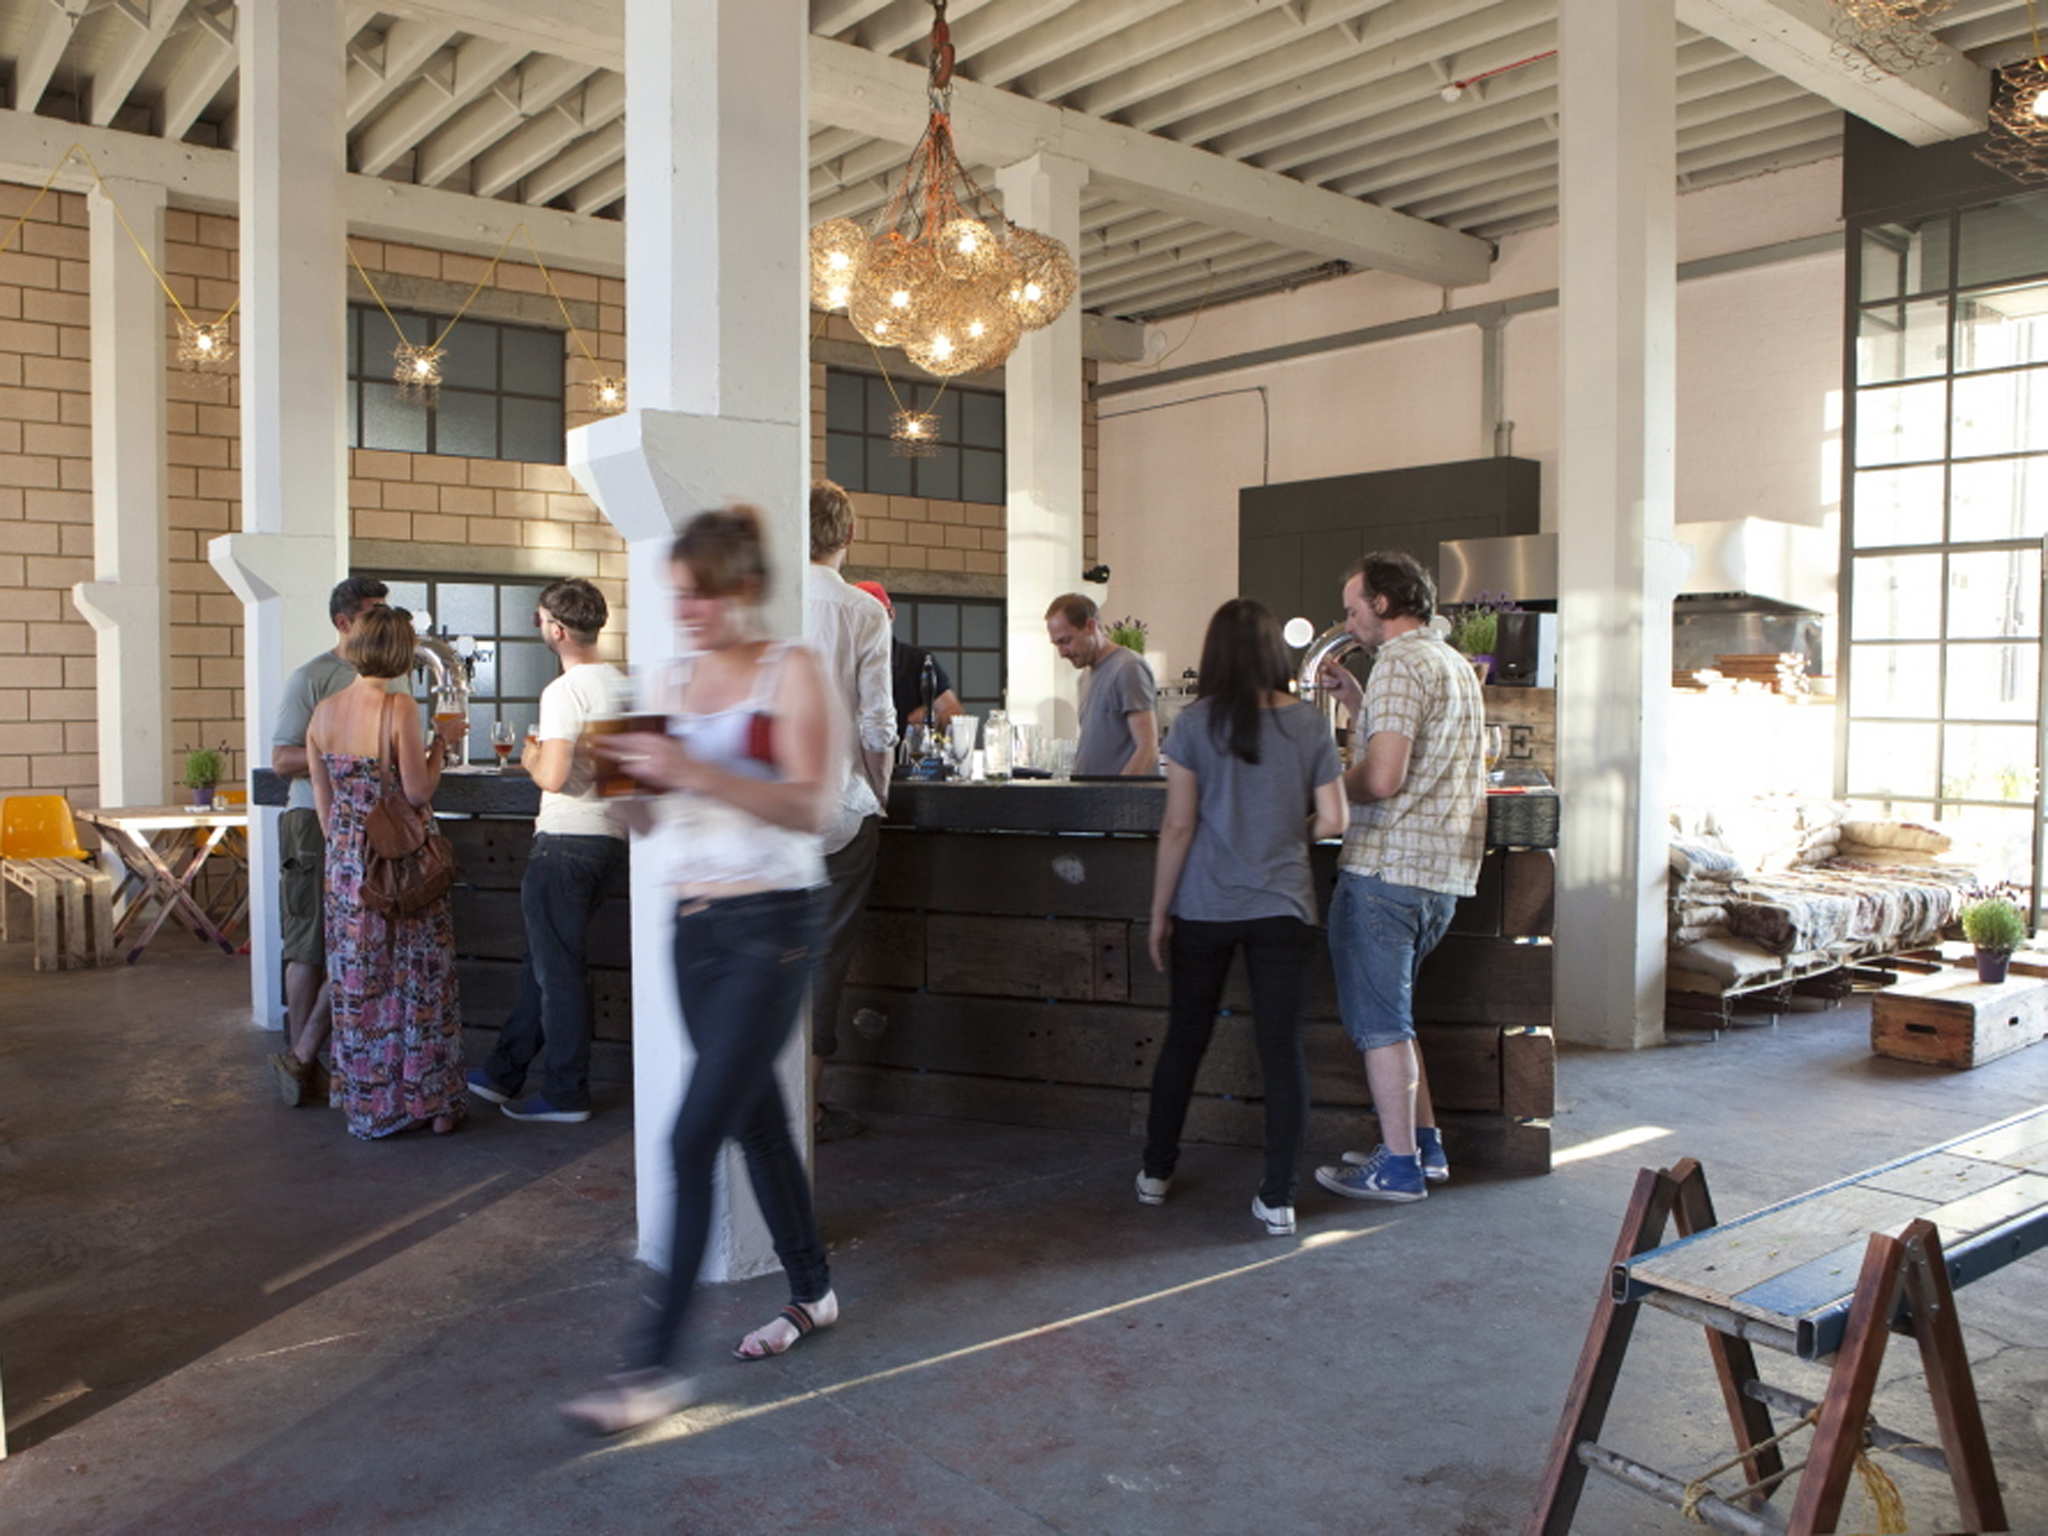 The 100 best bars and pubs in London - Crate, Hackney Wick